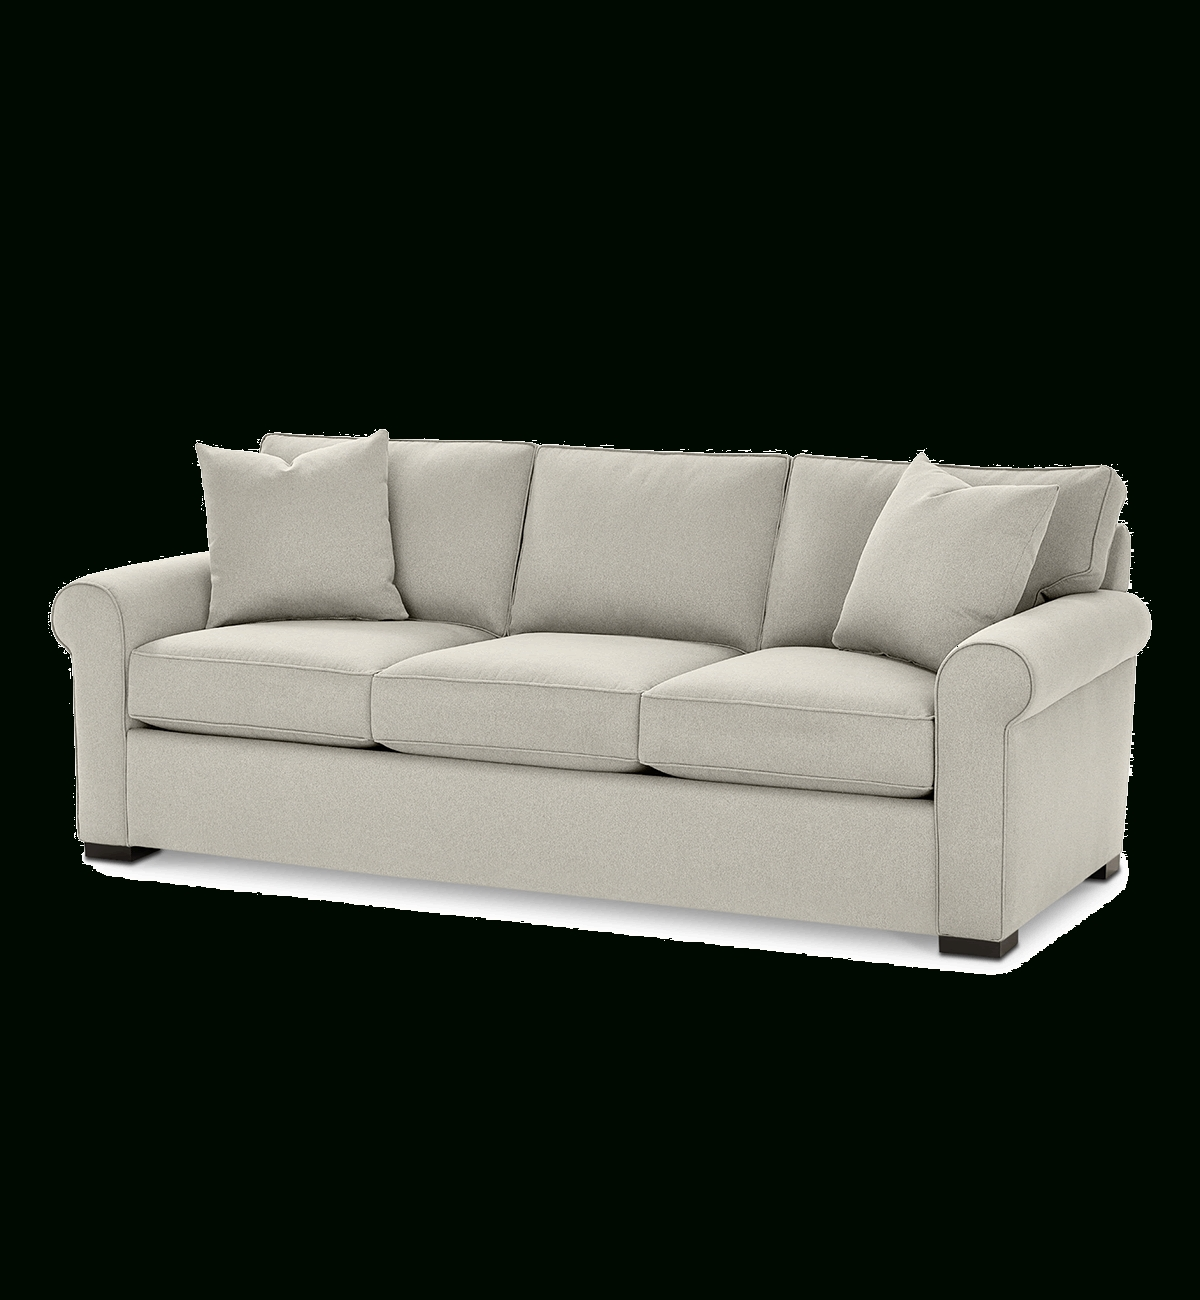 Well Liked Leather Couches And Sofas – Macy's Intended For Macys Leather Sofas (View 20 of 20)